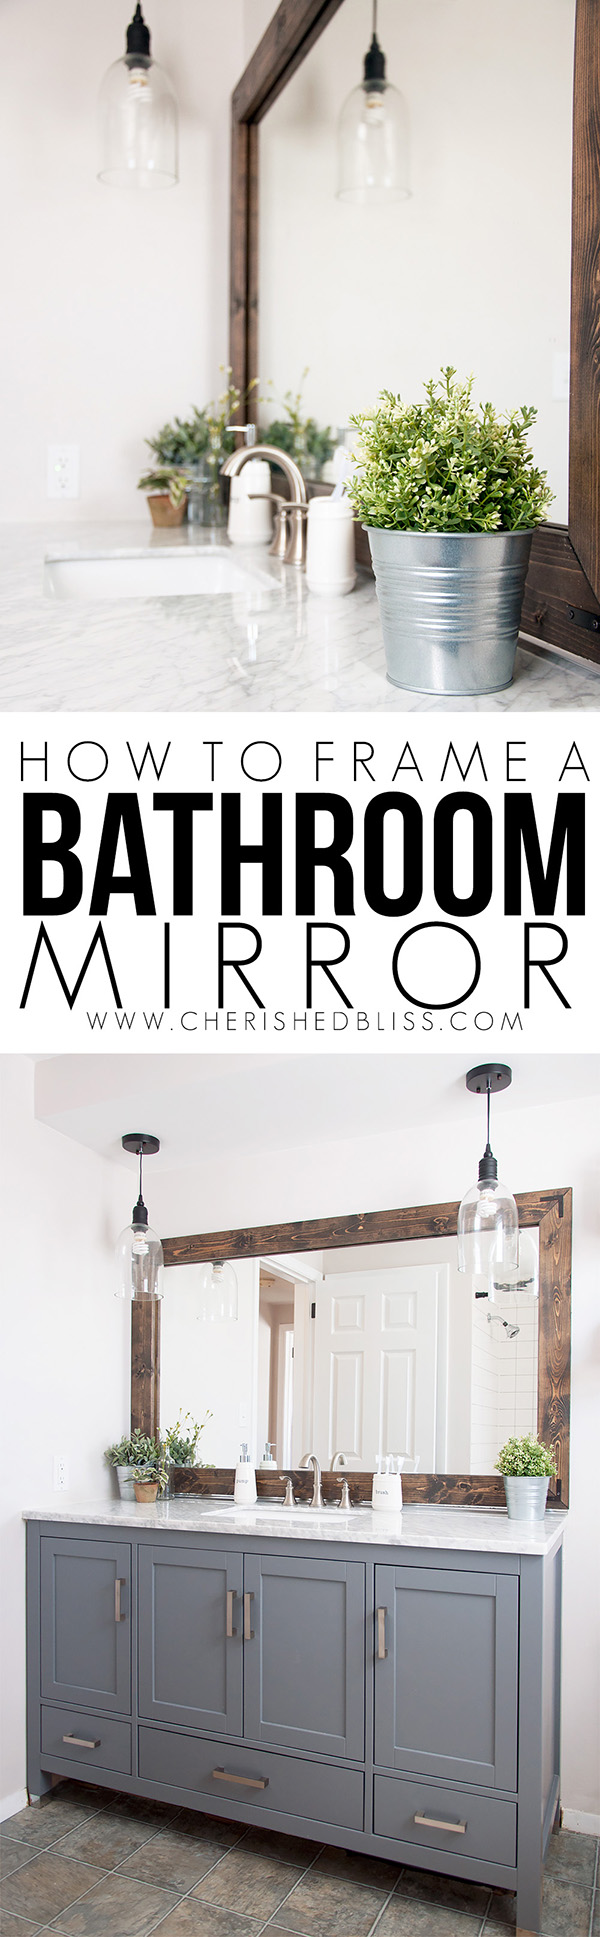 What s new in the world of farmhouse home decor diy and more page 7 of 12 the cottage market Rustic bathroom designs on a budget